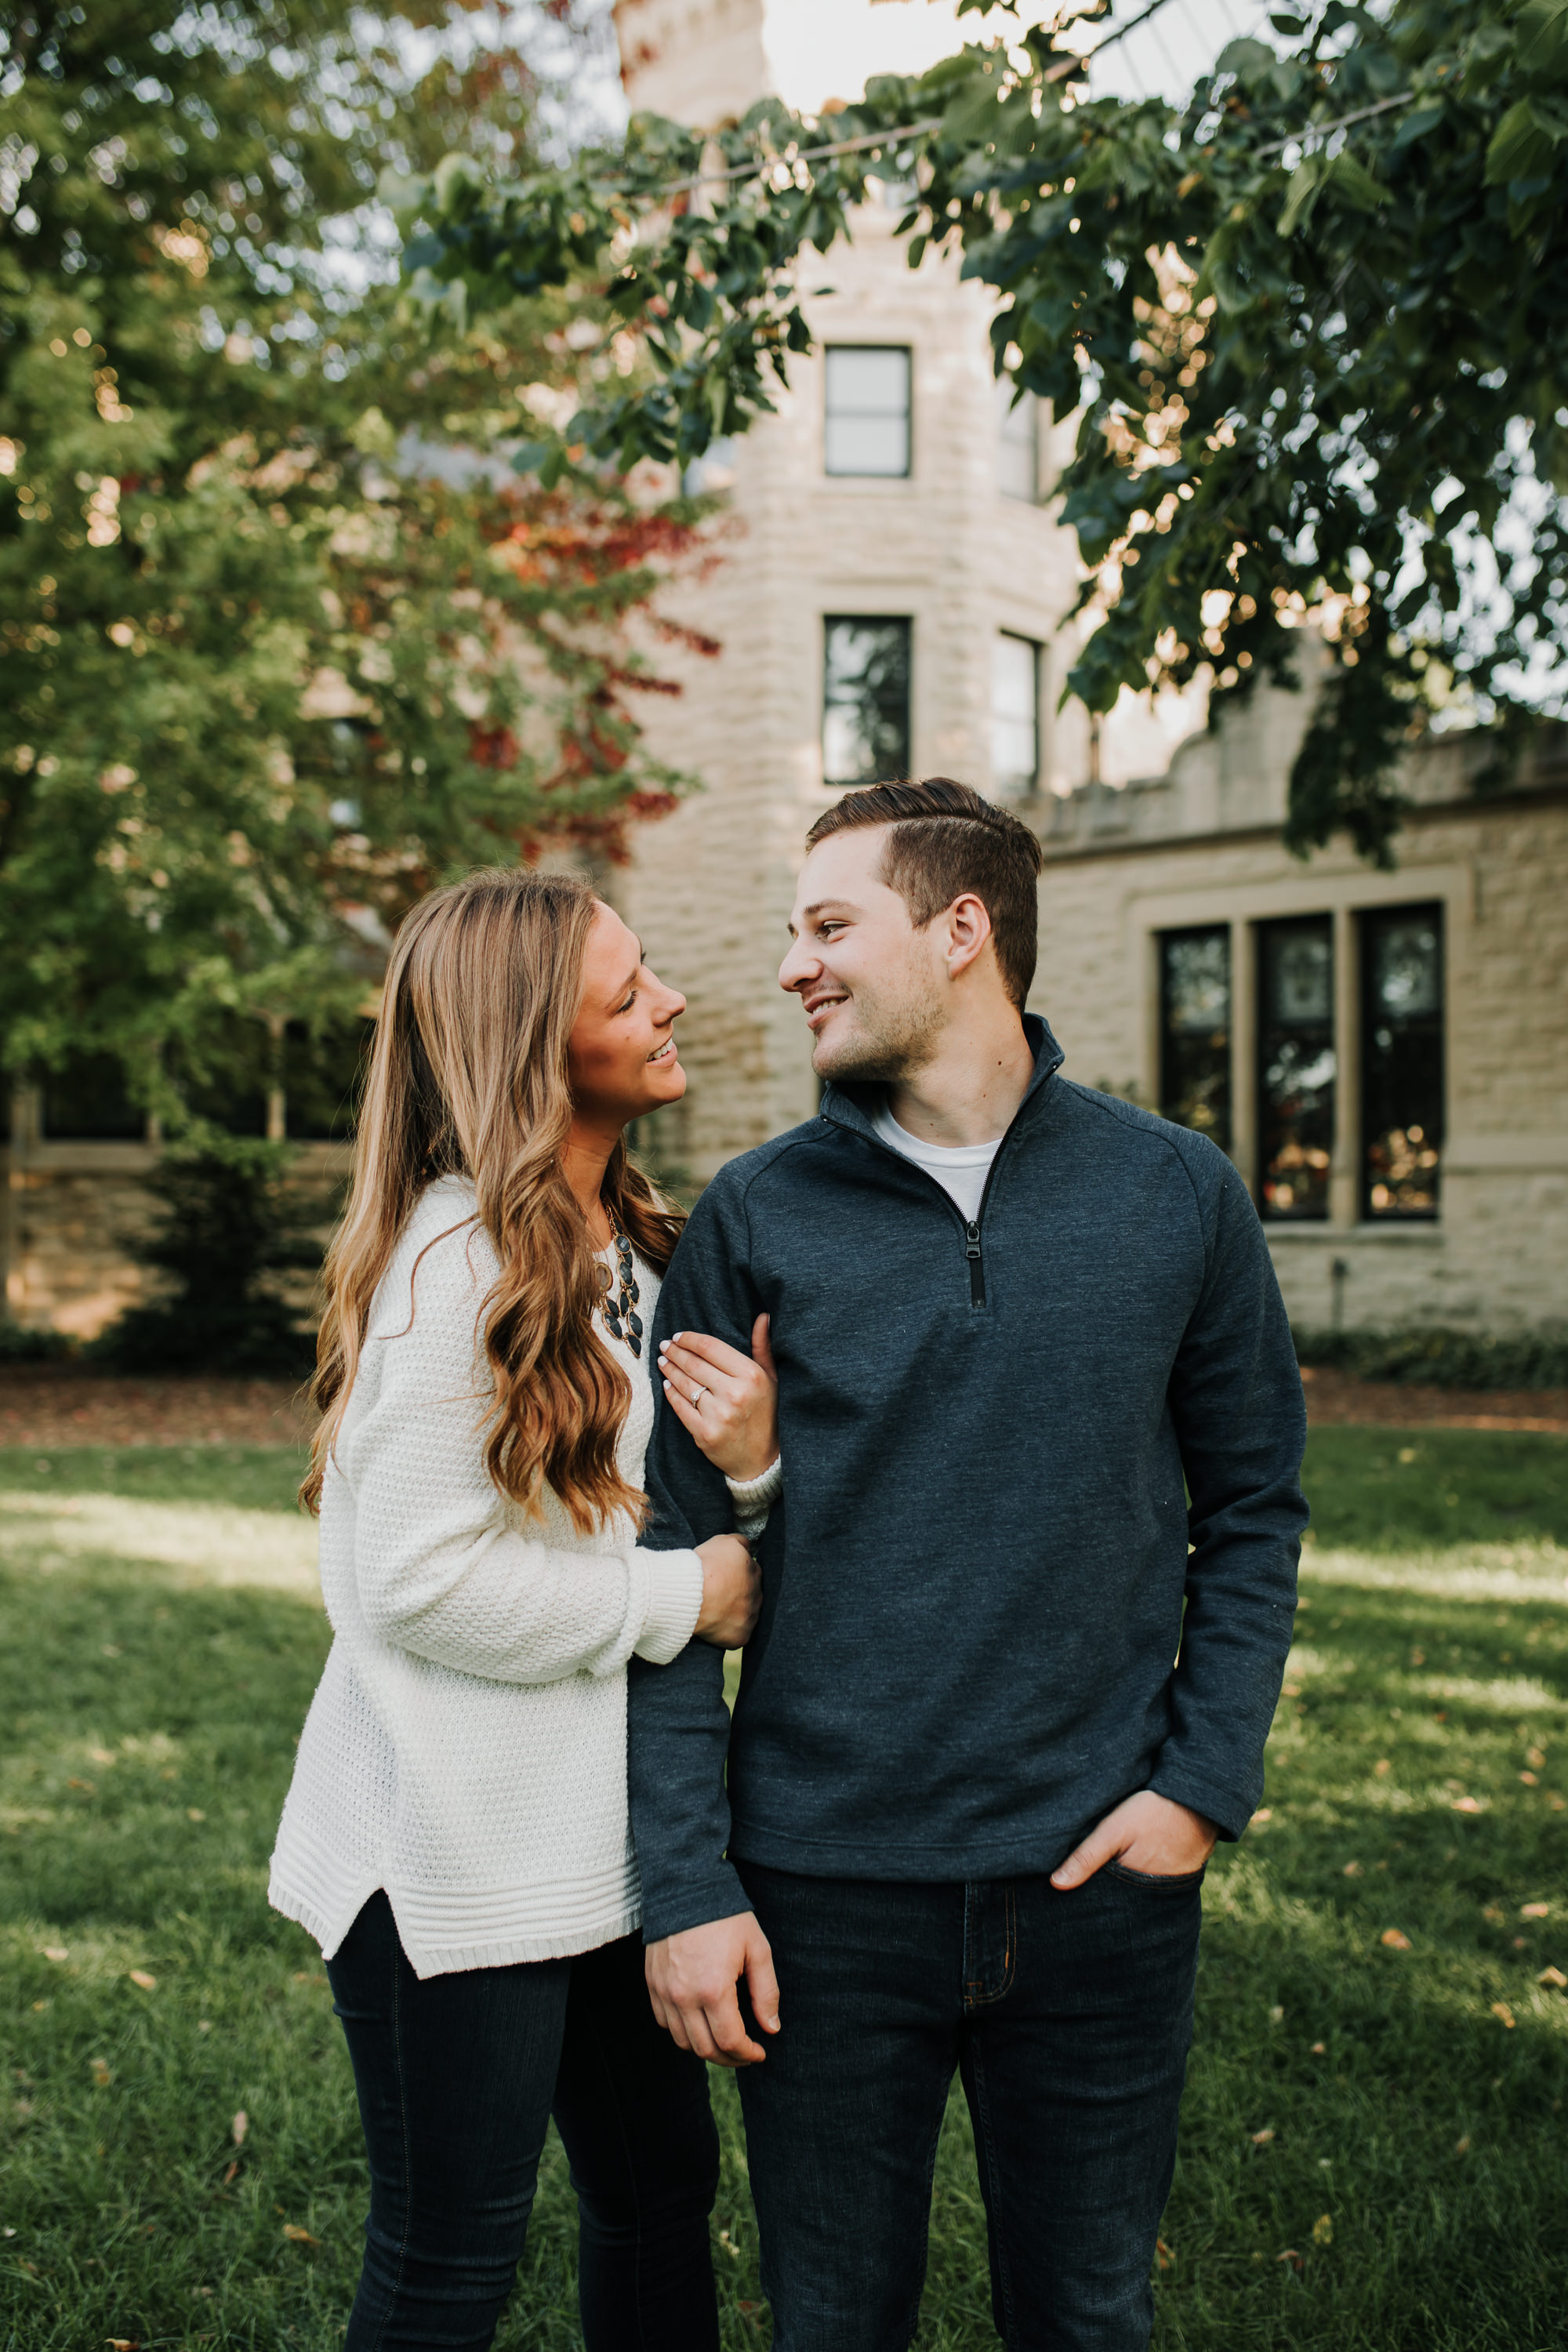 Michelle & Sam - Engaged - Nathaniel Jensen Photography - Omaha Nebraska Wedding Photograper - Omaha Nebraska Engagement Session-13.jpg